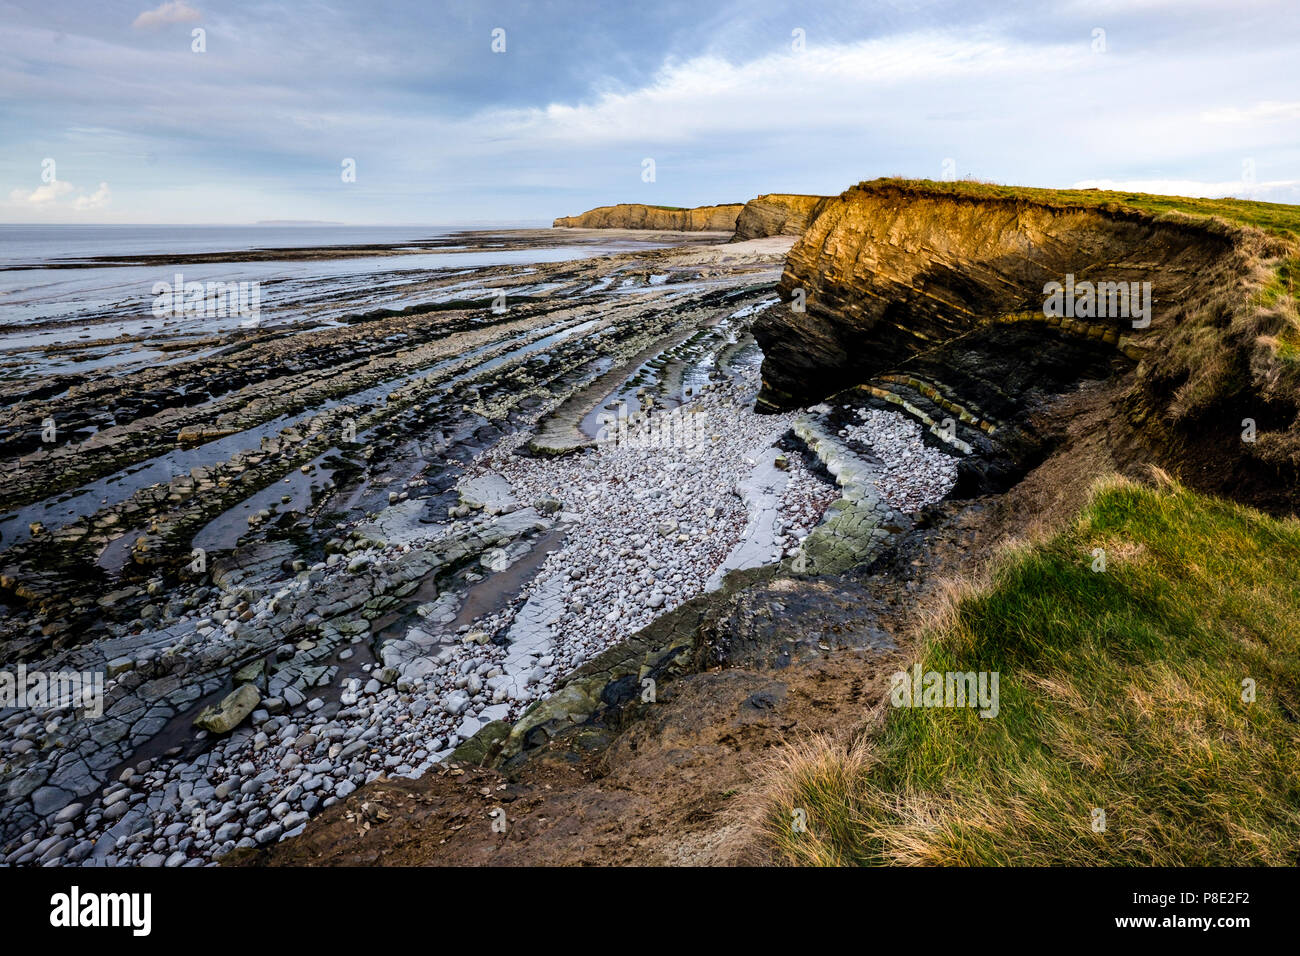 Early evening view of Kilve Beach, Somerset, Uk.  Often used by students of geology studying Blue Lias, black shale, marl, limestone and faults. - Stock Image